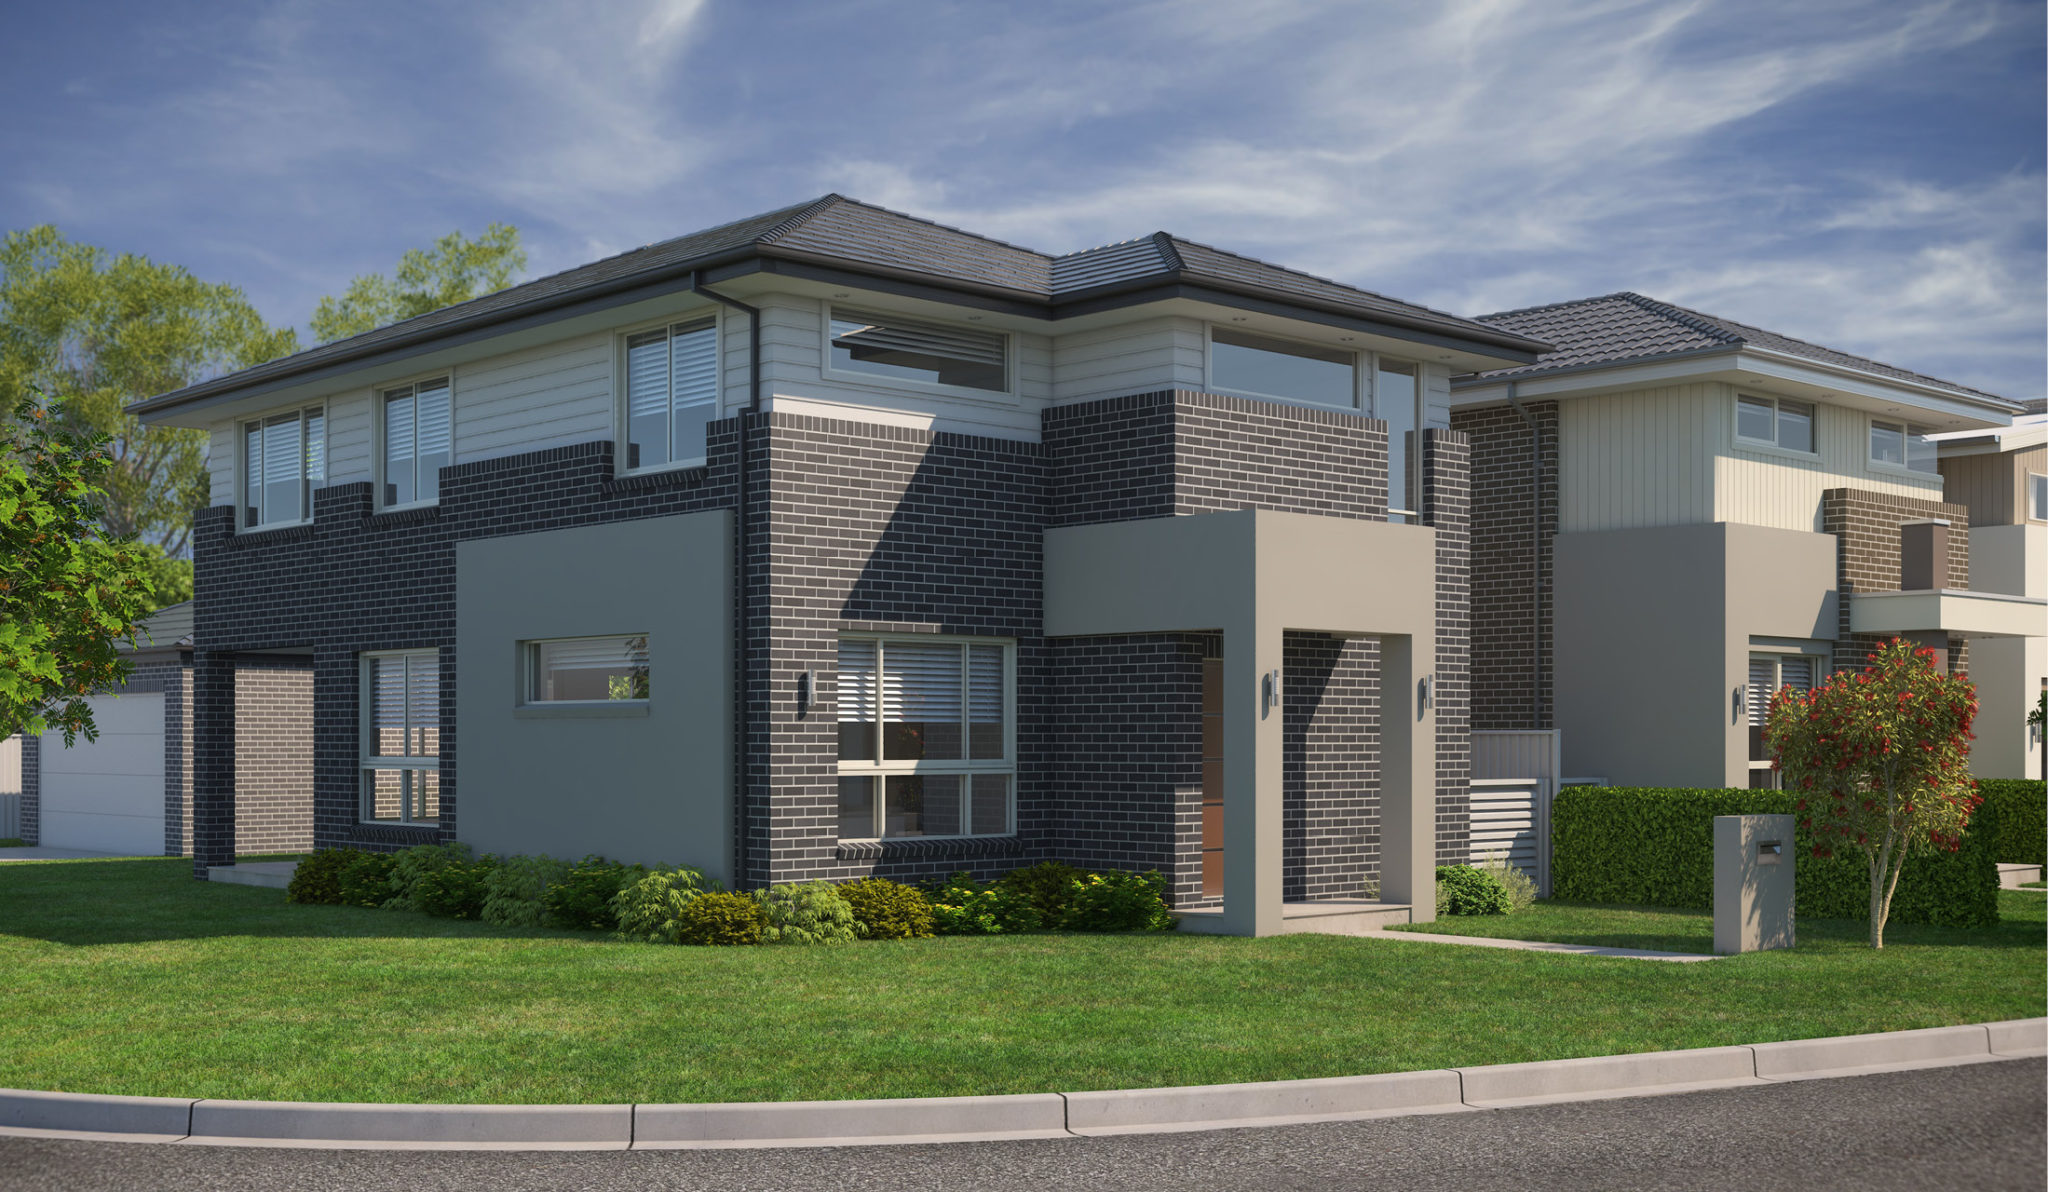 Lot 32_Nelson Rd_Facade_Body